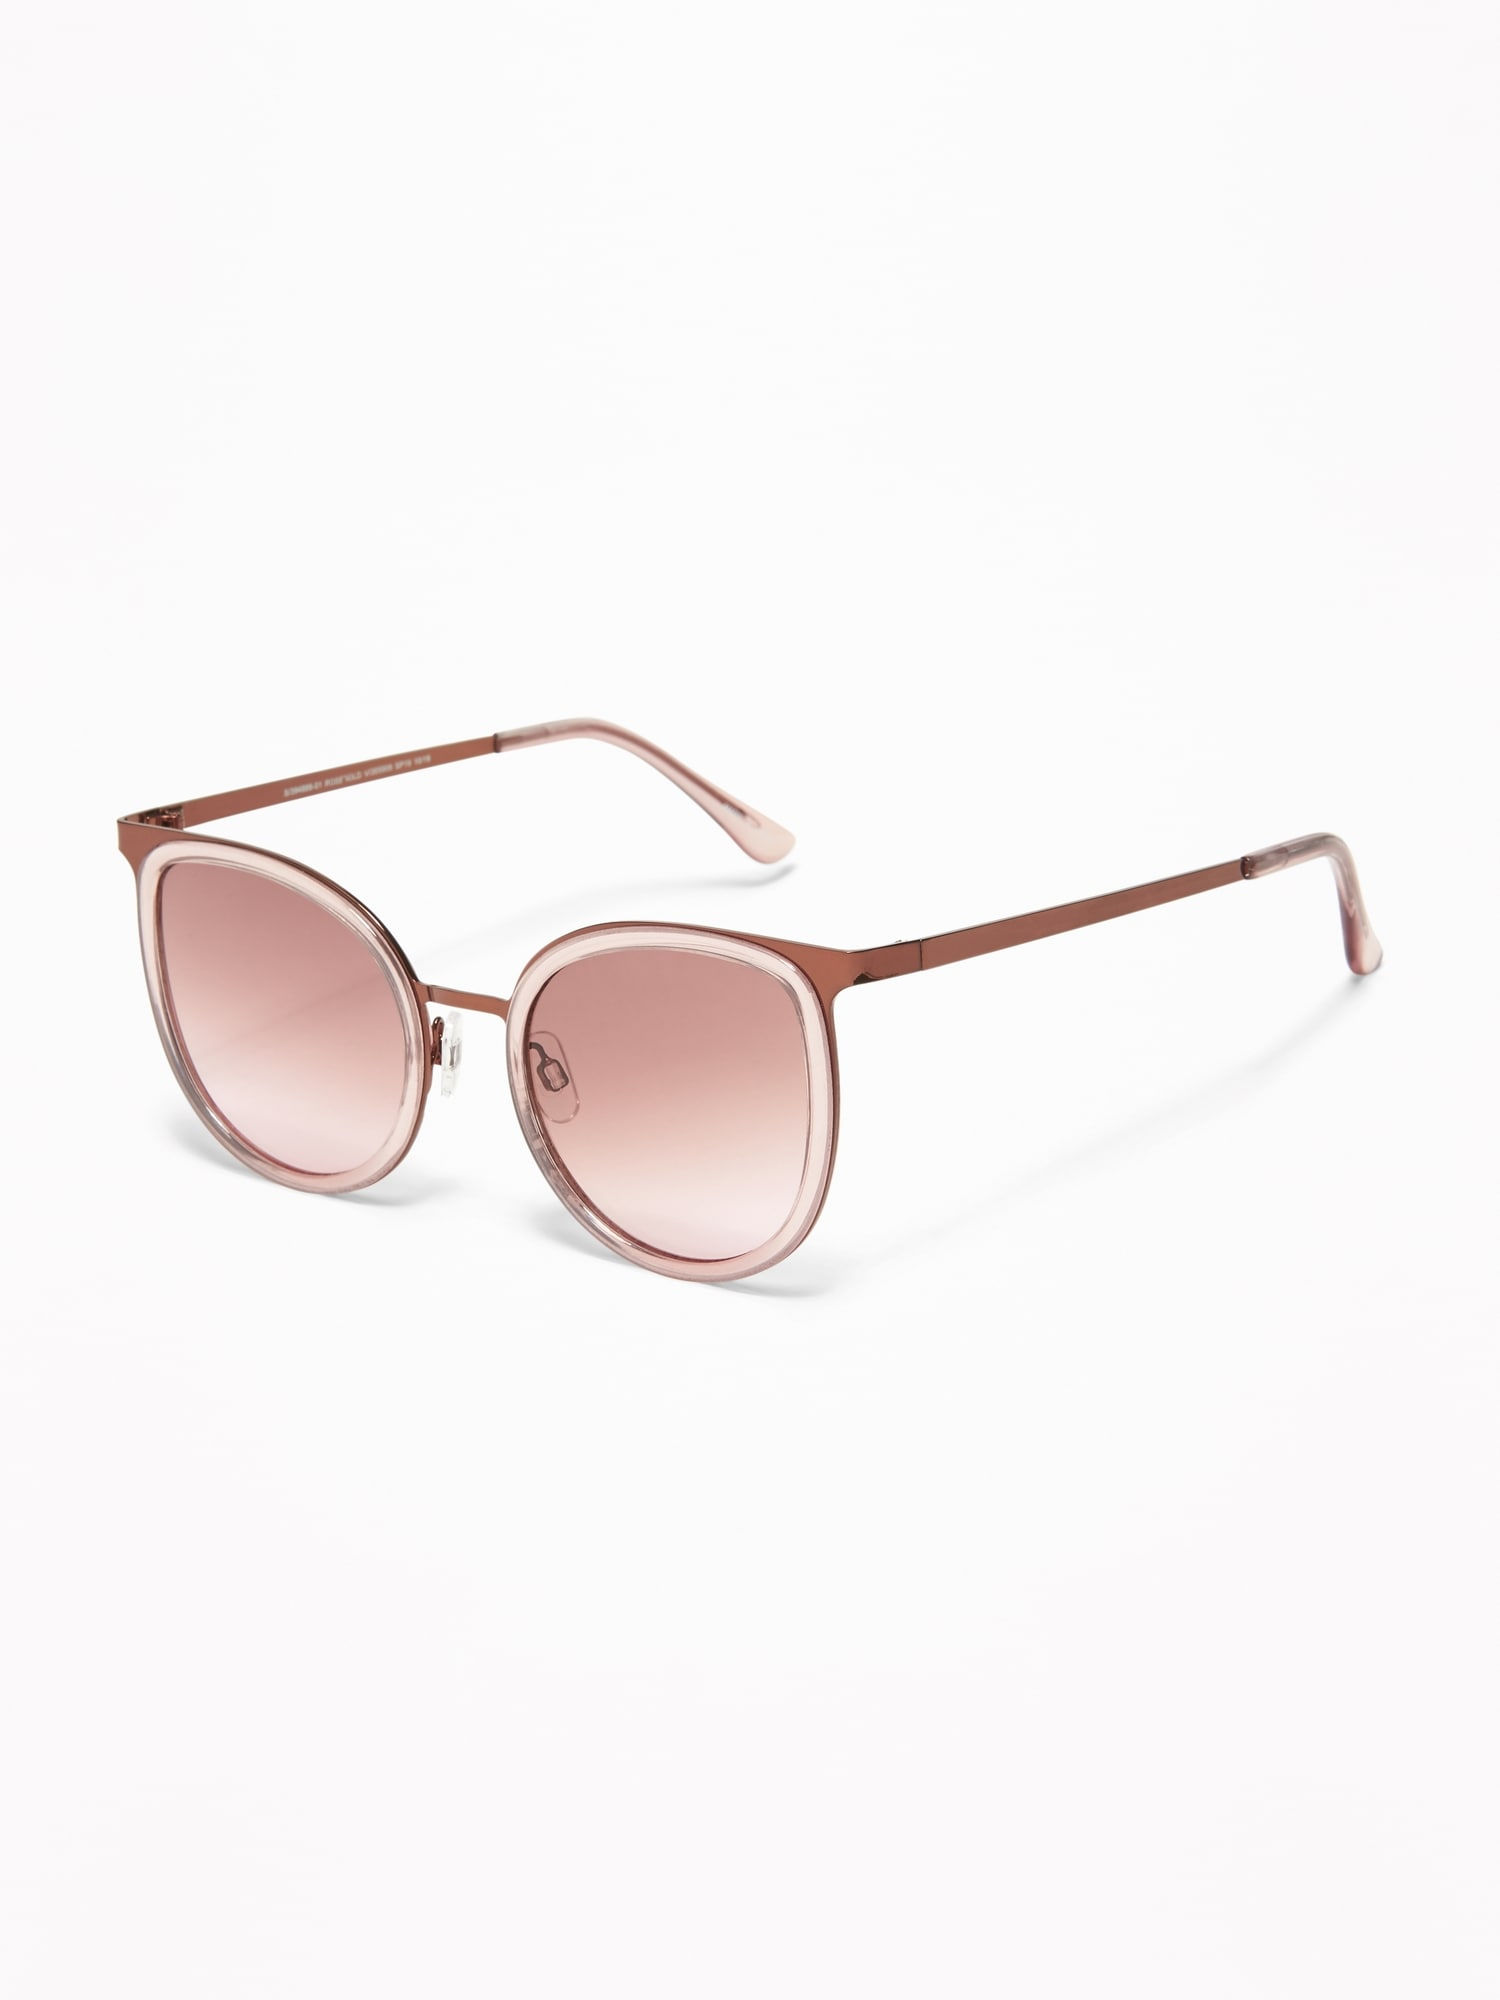 982140cbae Mixed-Material Sunglasses for Women